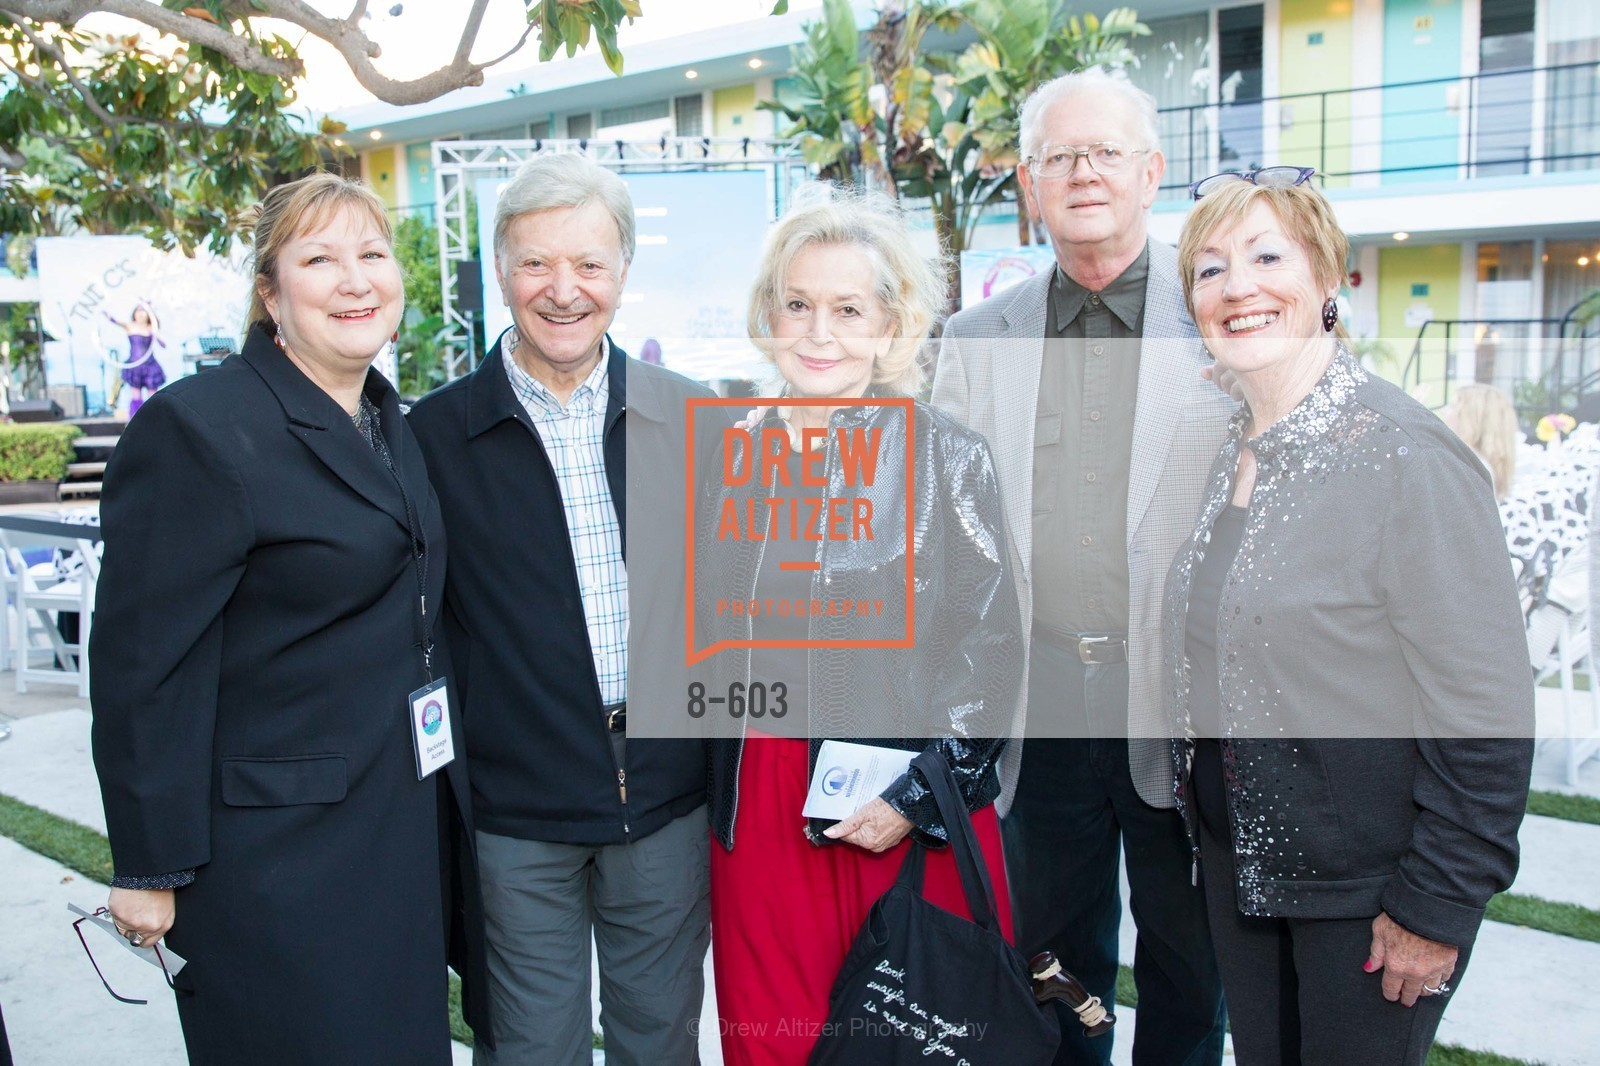 Veronica LeBeau, Milton Mosk, Irene Bechtel, Tom Foutch, Maureen O'Shea, 22nd Annual TNDC CELEBRITY POOL TOSS, US, October 8th, 2014,Drew Altizer, Drew Altizer Photography, full-service agency, private events, San Francisco photographer, photographer california